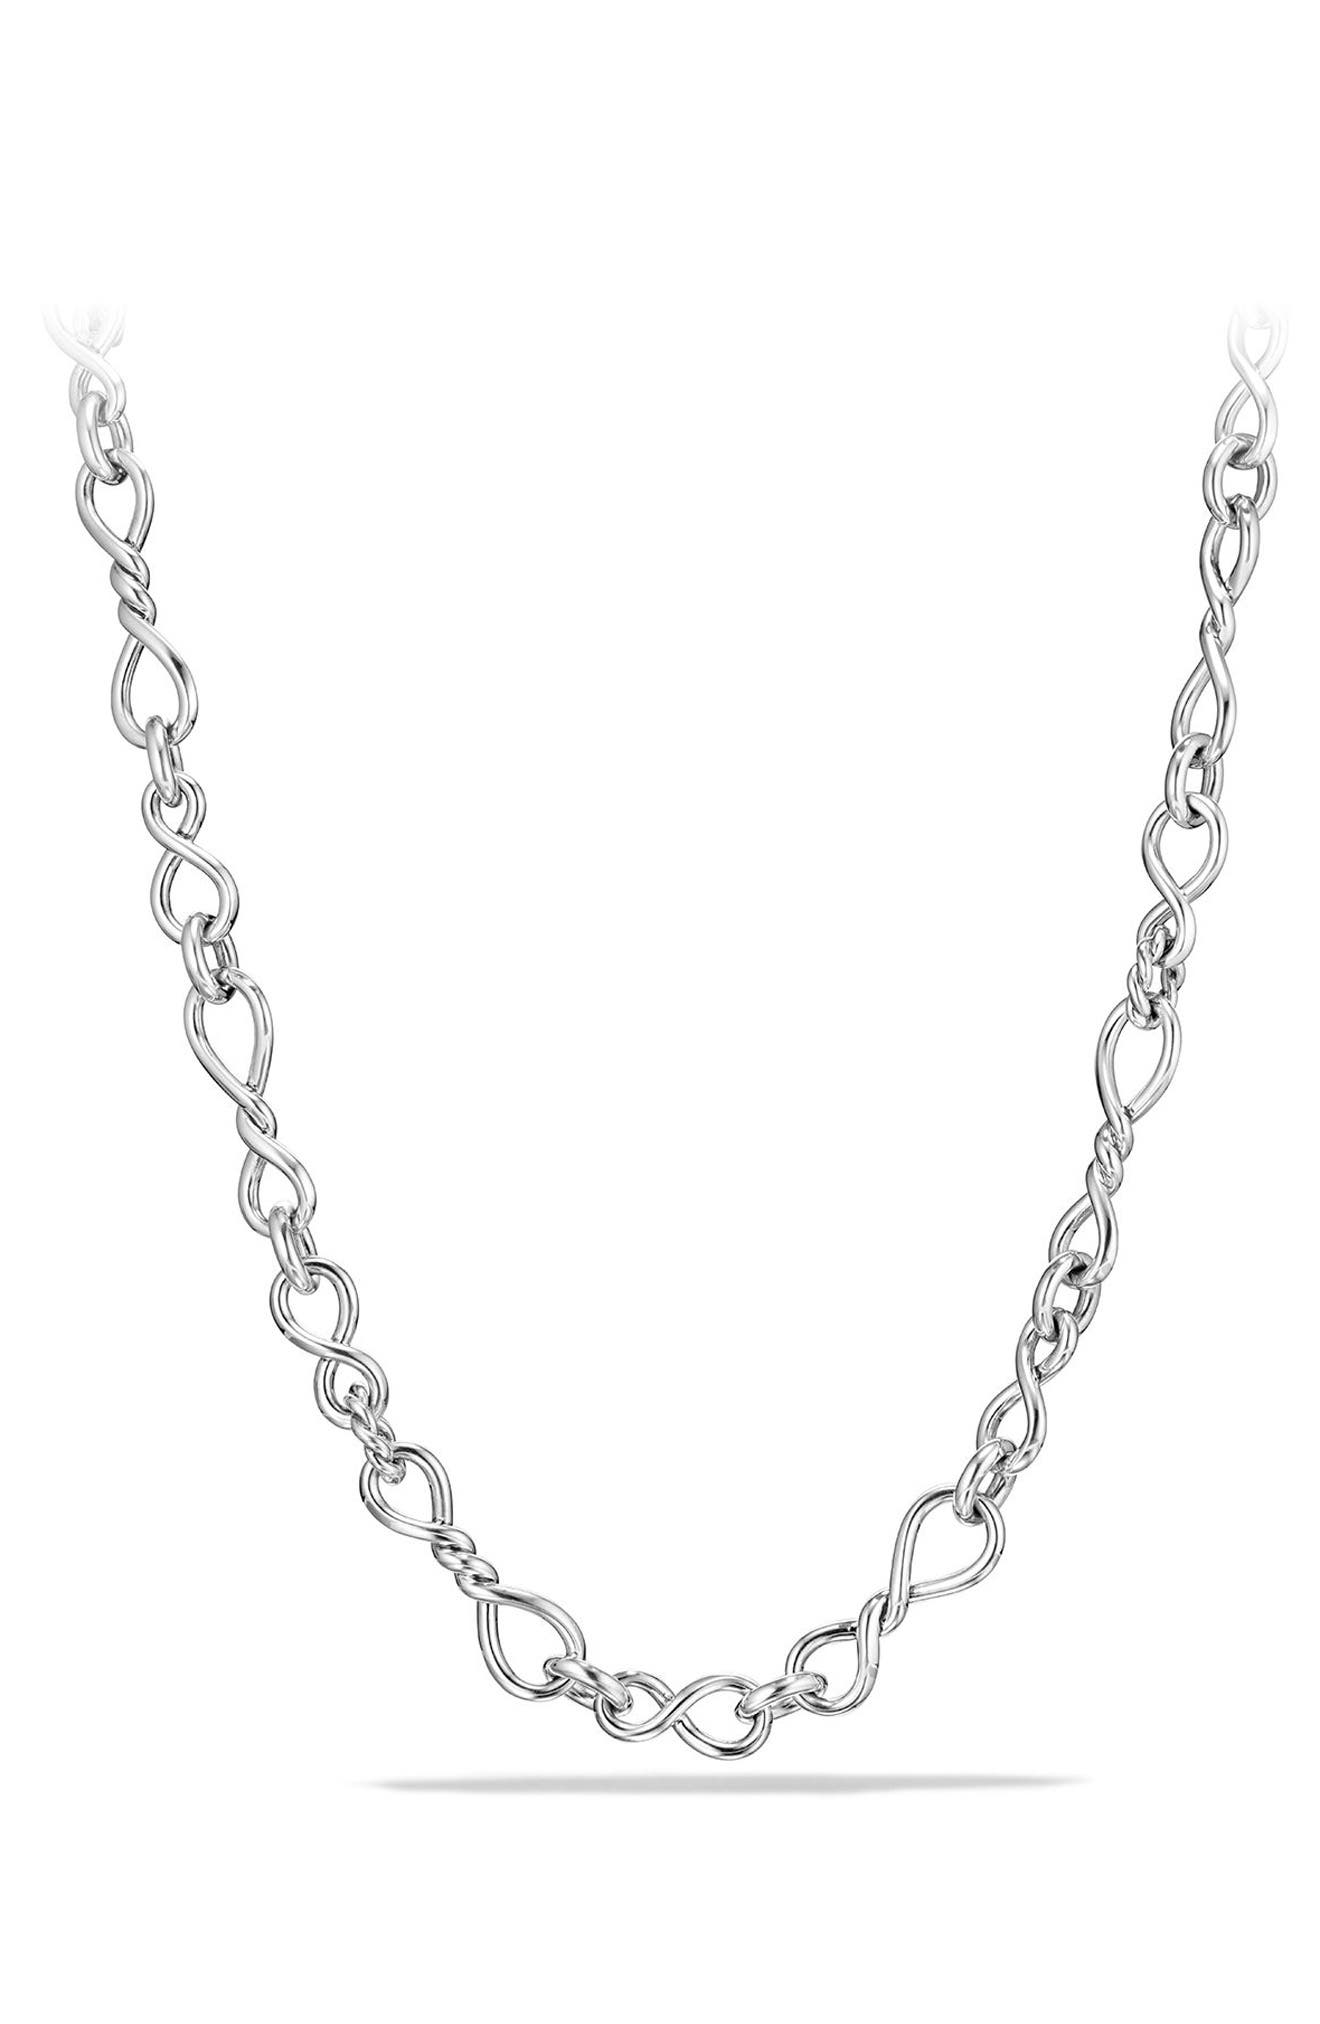 Continuance Medium Chain Necklace,                             Main thumbnail 1, color,                             SILVER